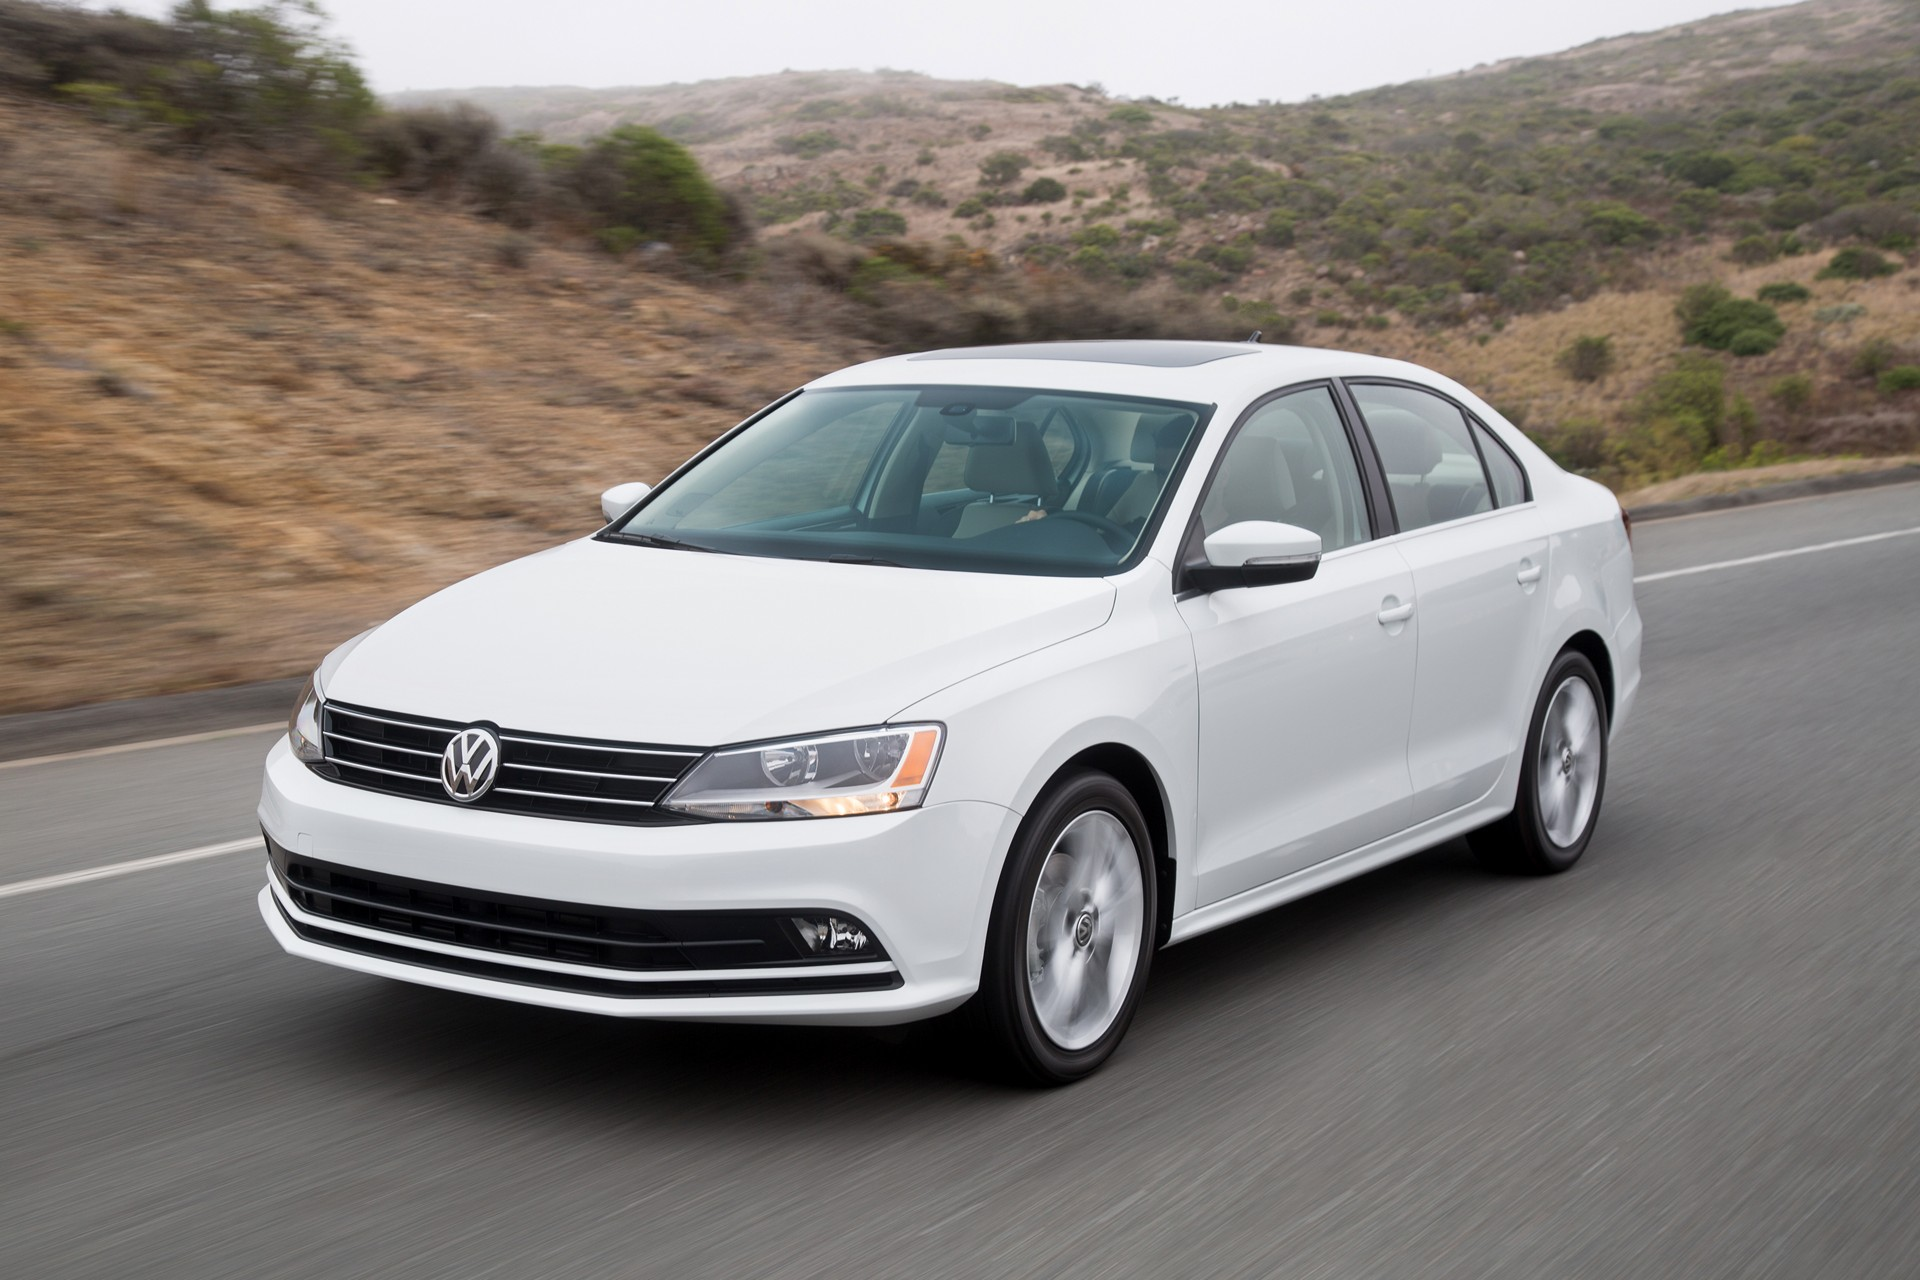 2016 volkswagen jetta review carrrs auto portal. Black Bedroom Furniture Sets. Home Design Ideas